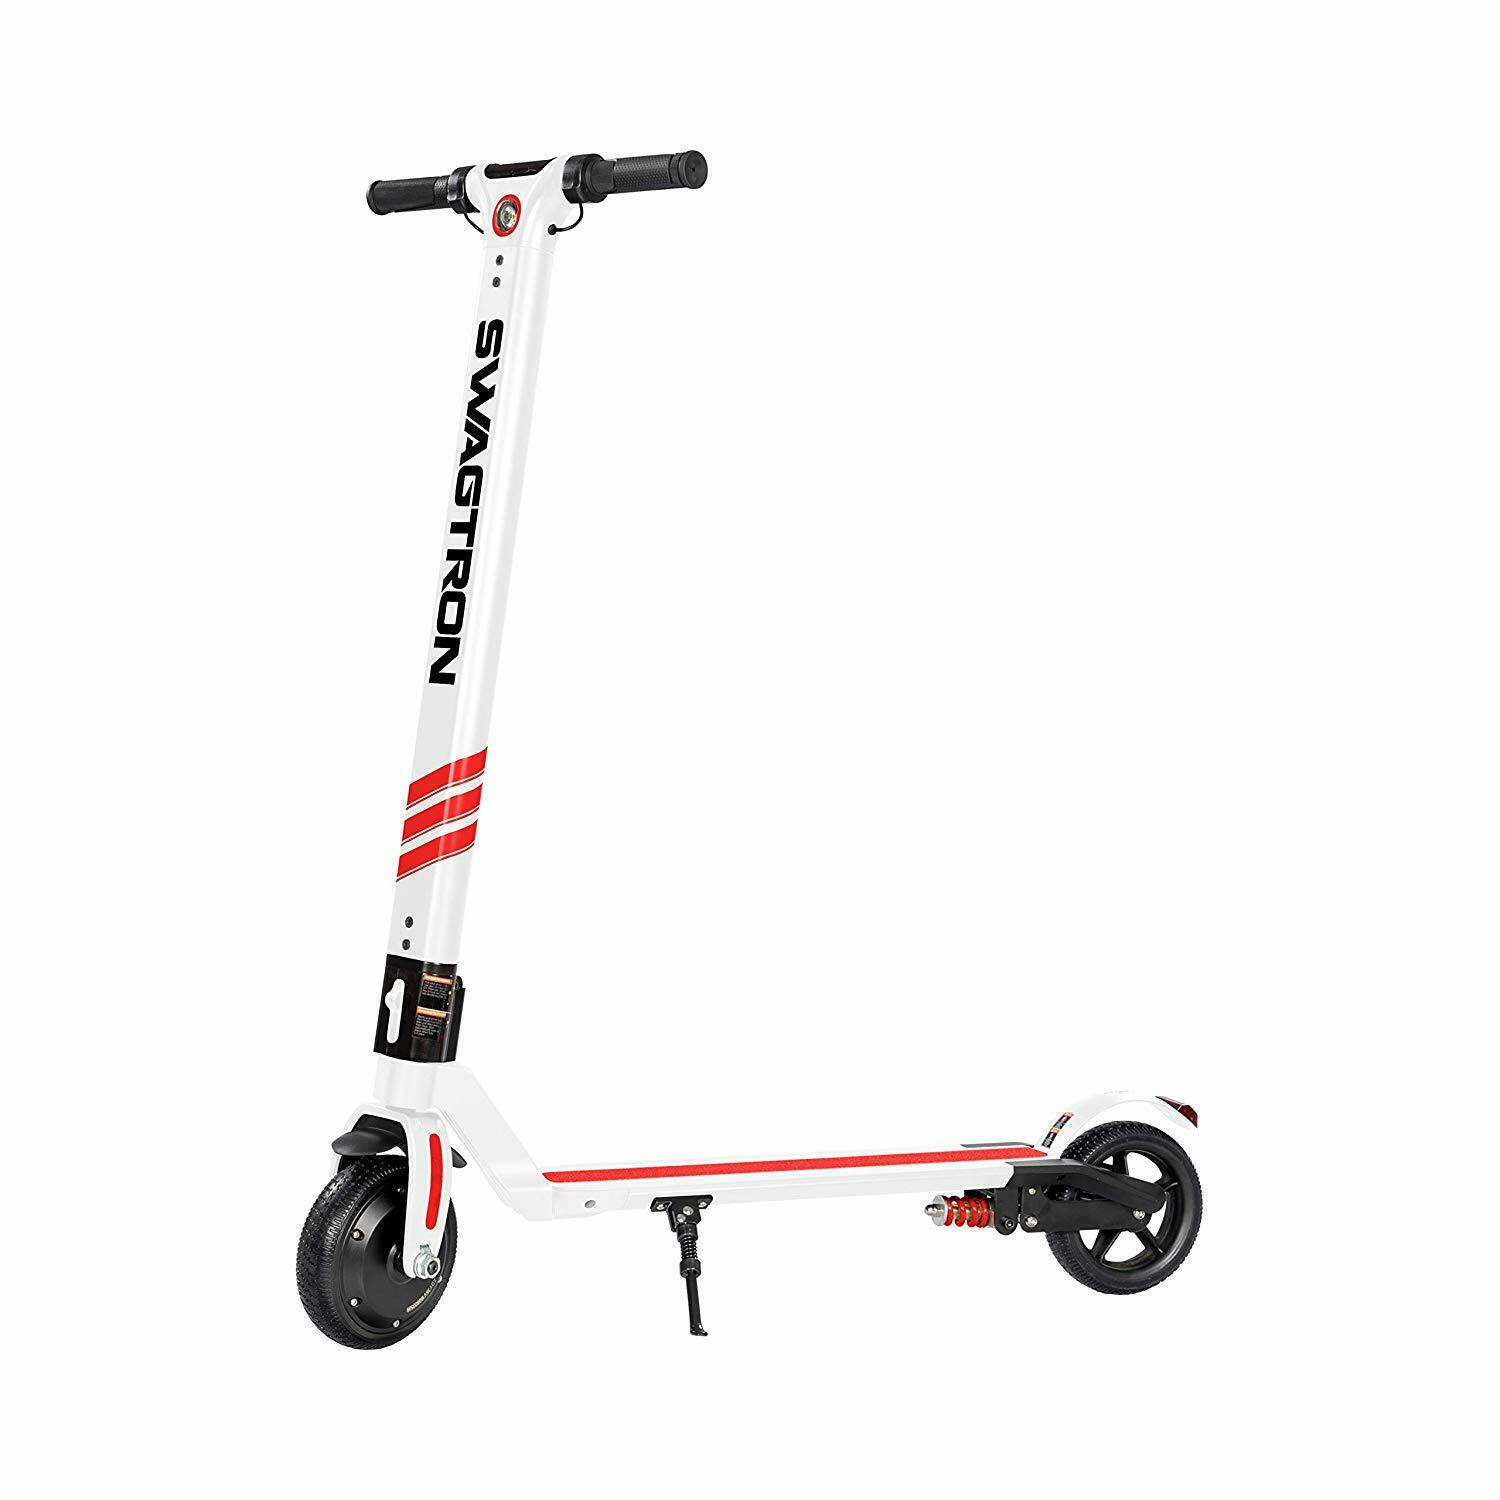 Swagtron Swagger Fast Folding Carbon Fiber Electric